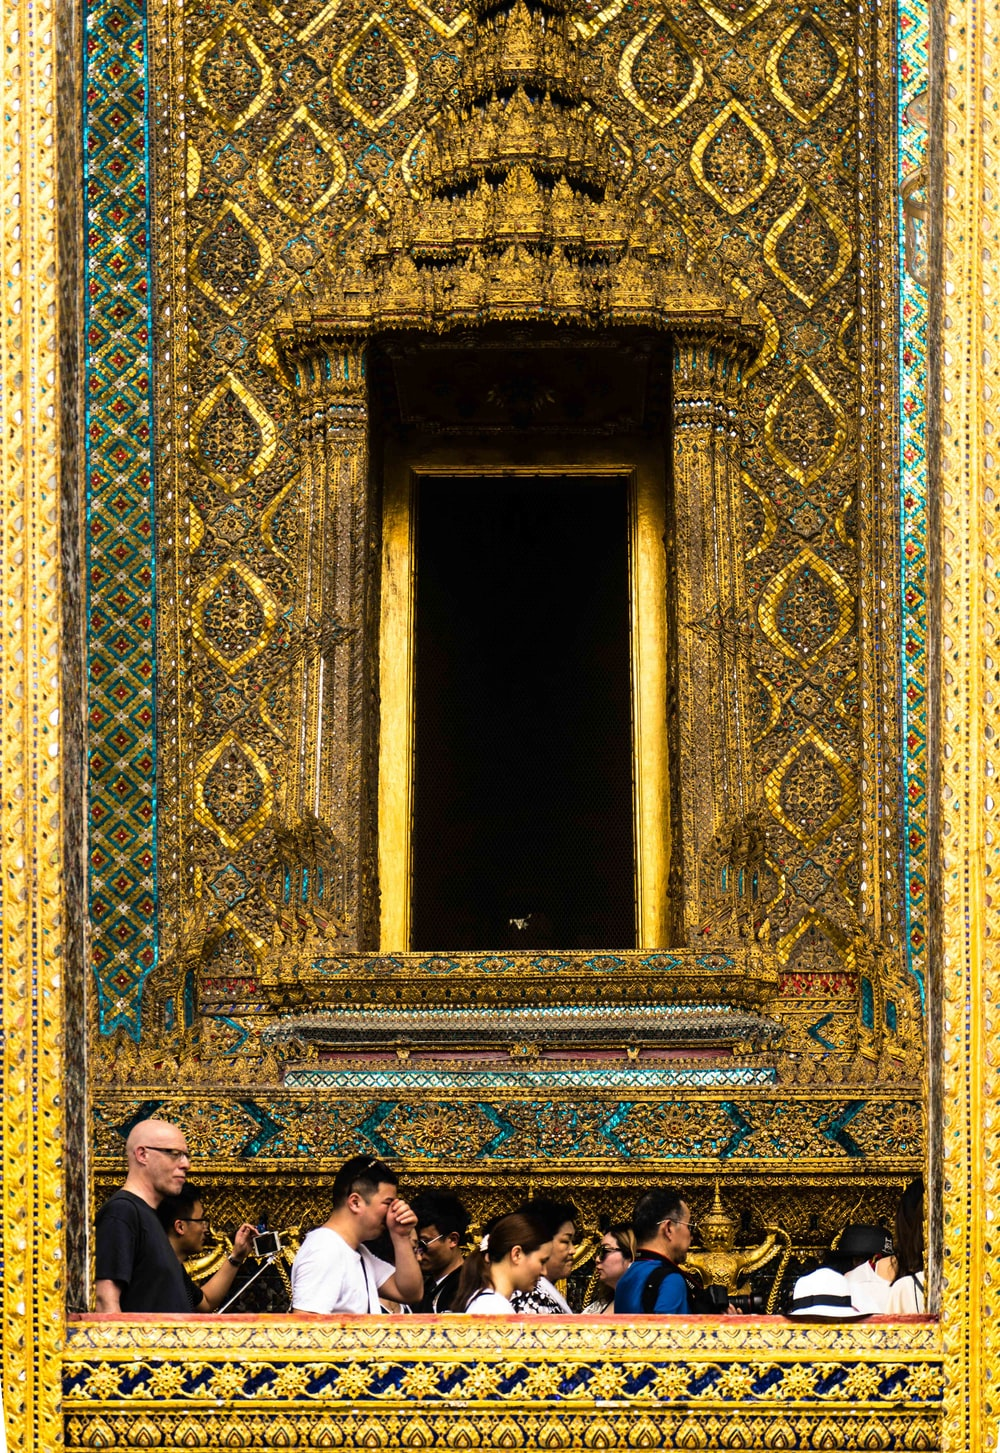 people in front of gold temple